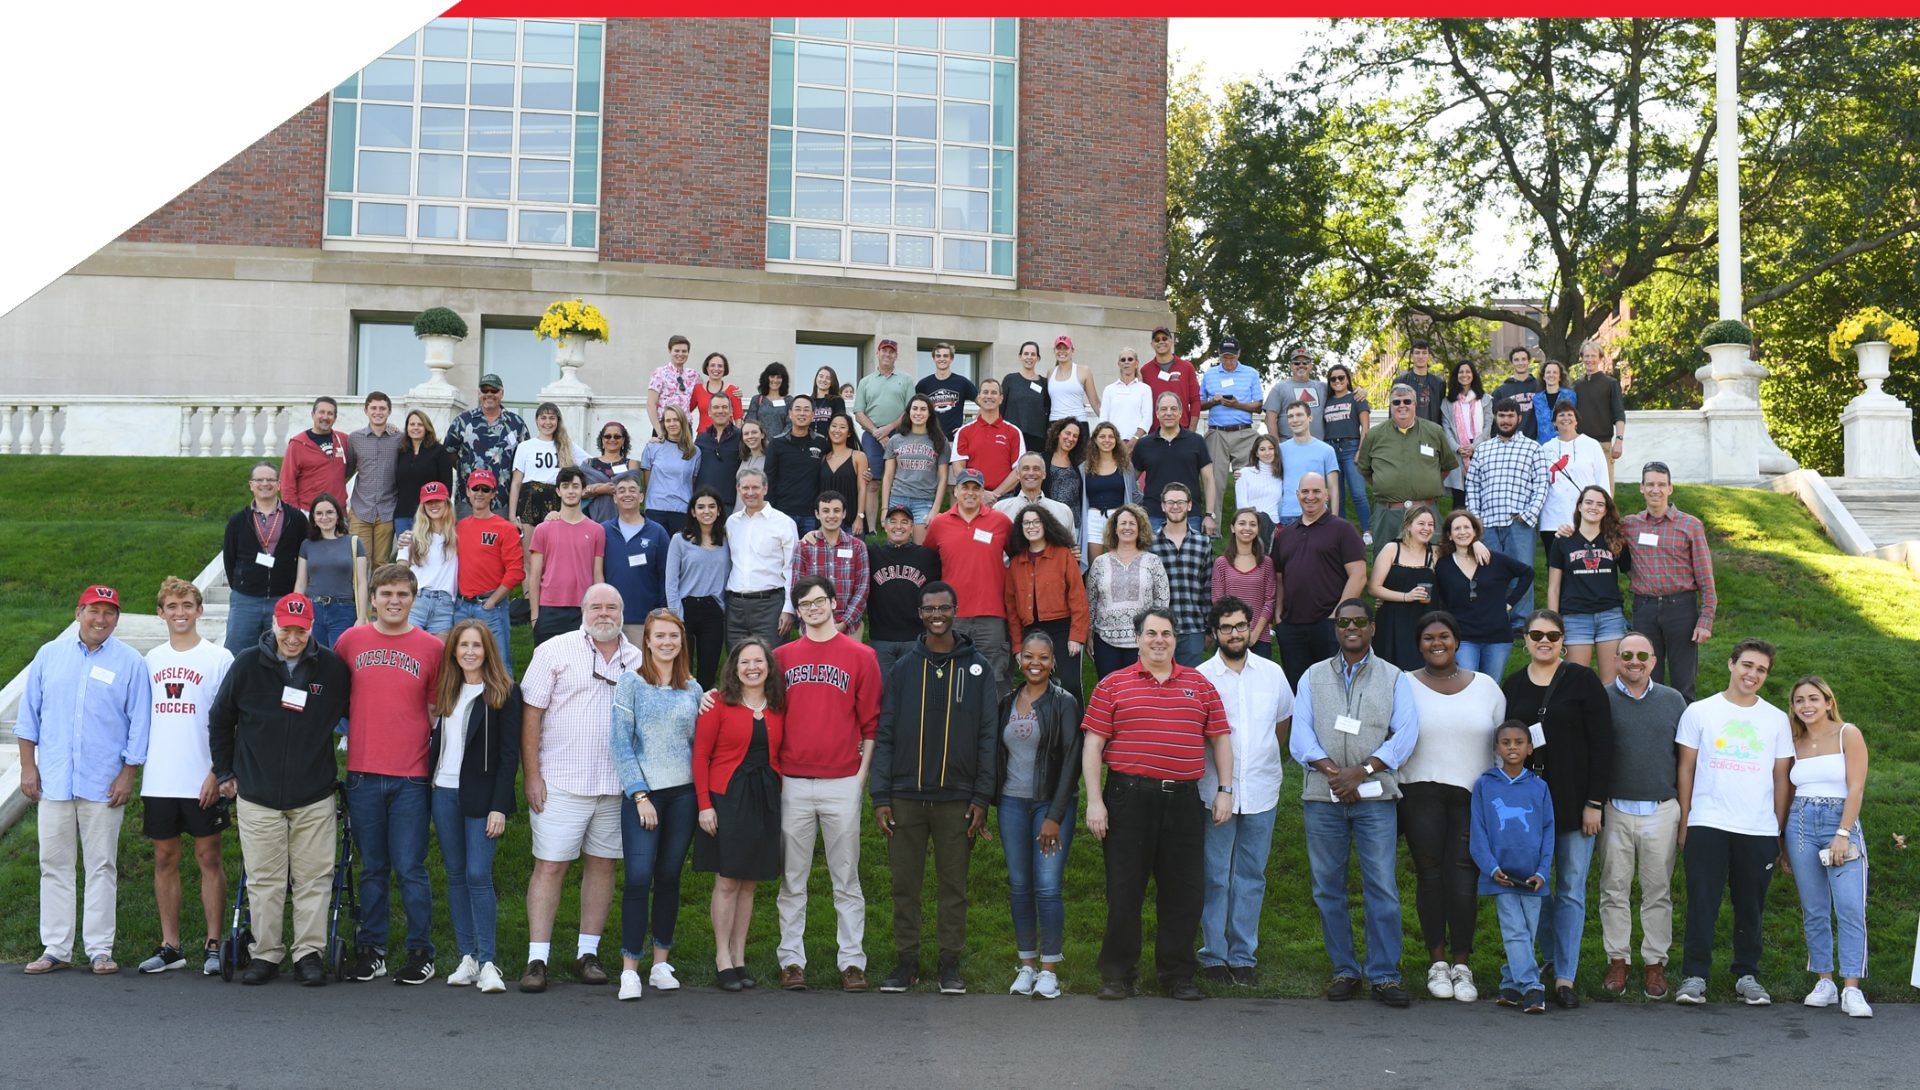 Annual Legacy Photo Highlights Generational Wesleyan Connections